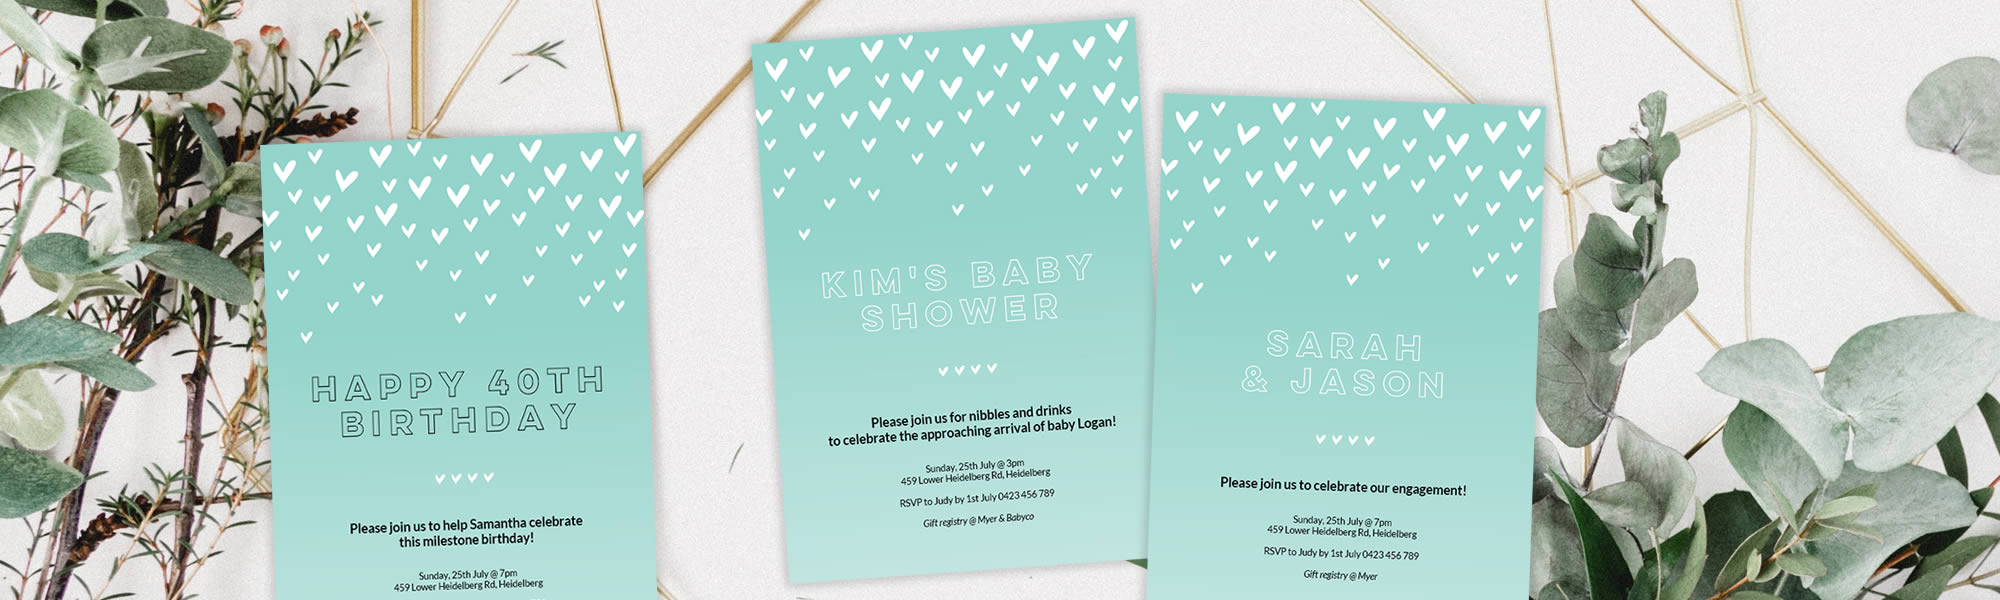 Birthday, baby shower or wedding invitation with green hearts